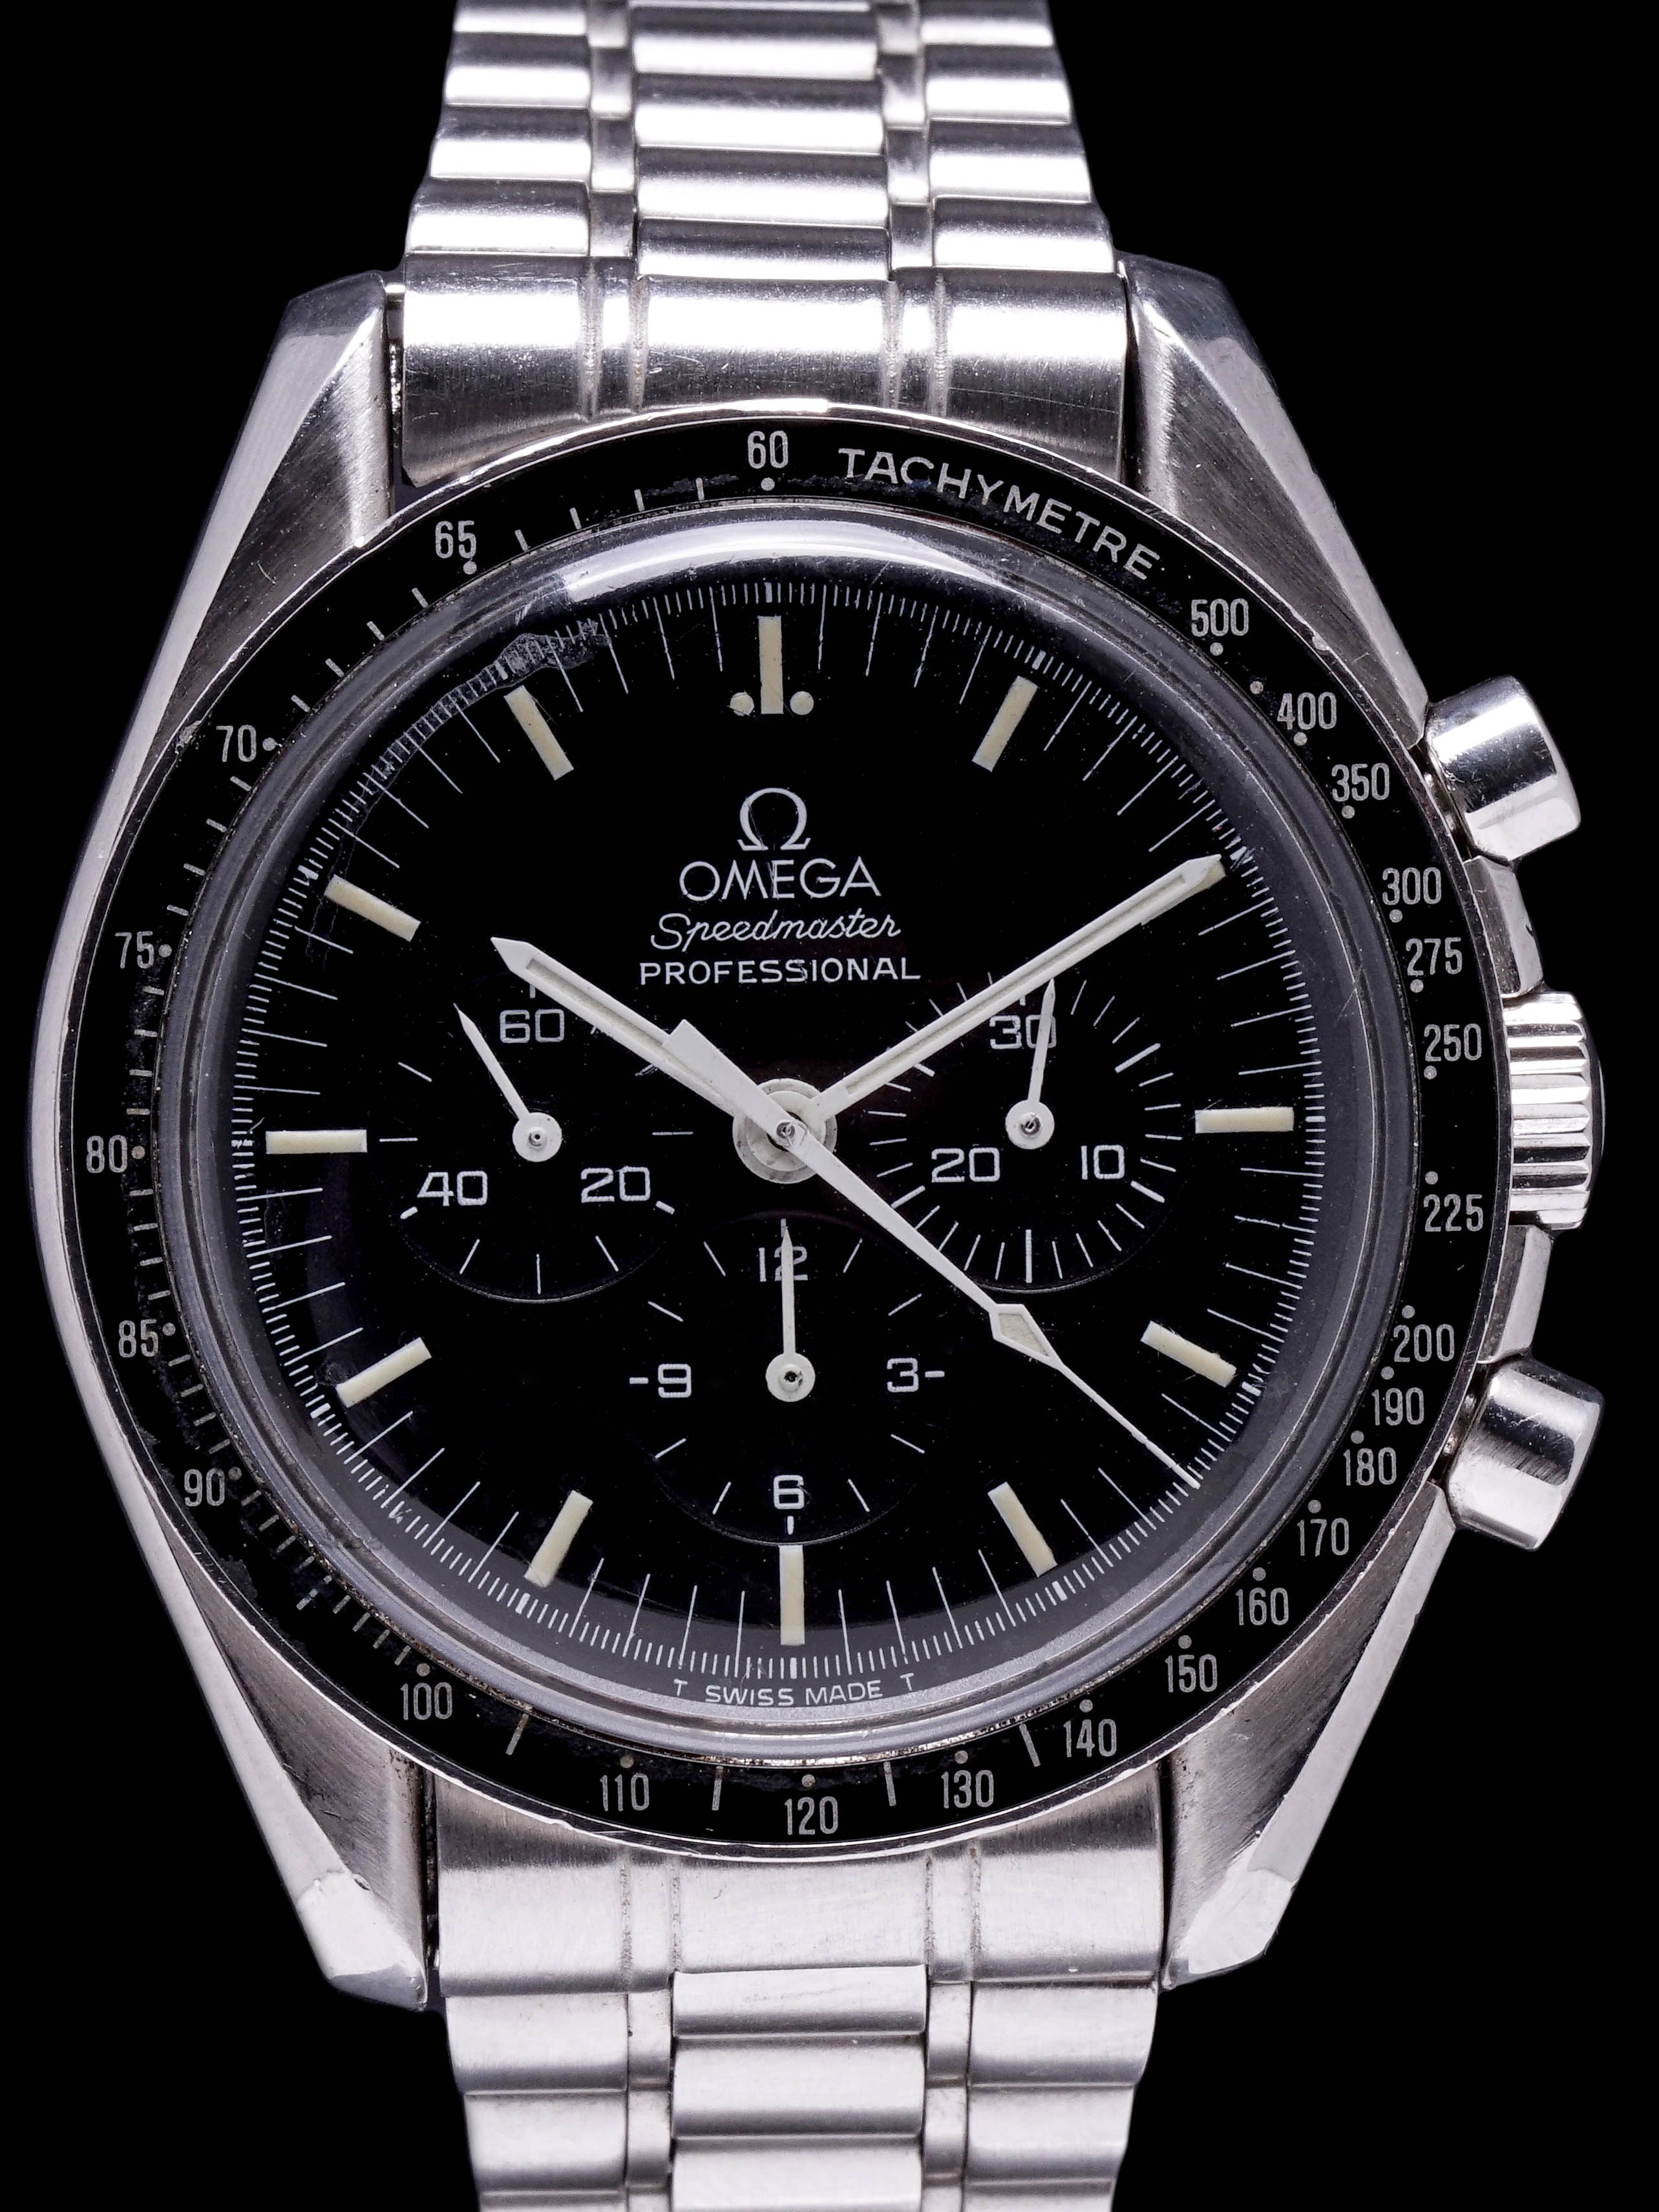 **Unpolished** 1985 OMEGA Speedmaster Professional (Ref. 145.022)